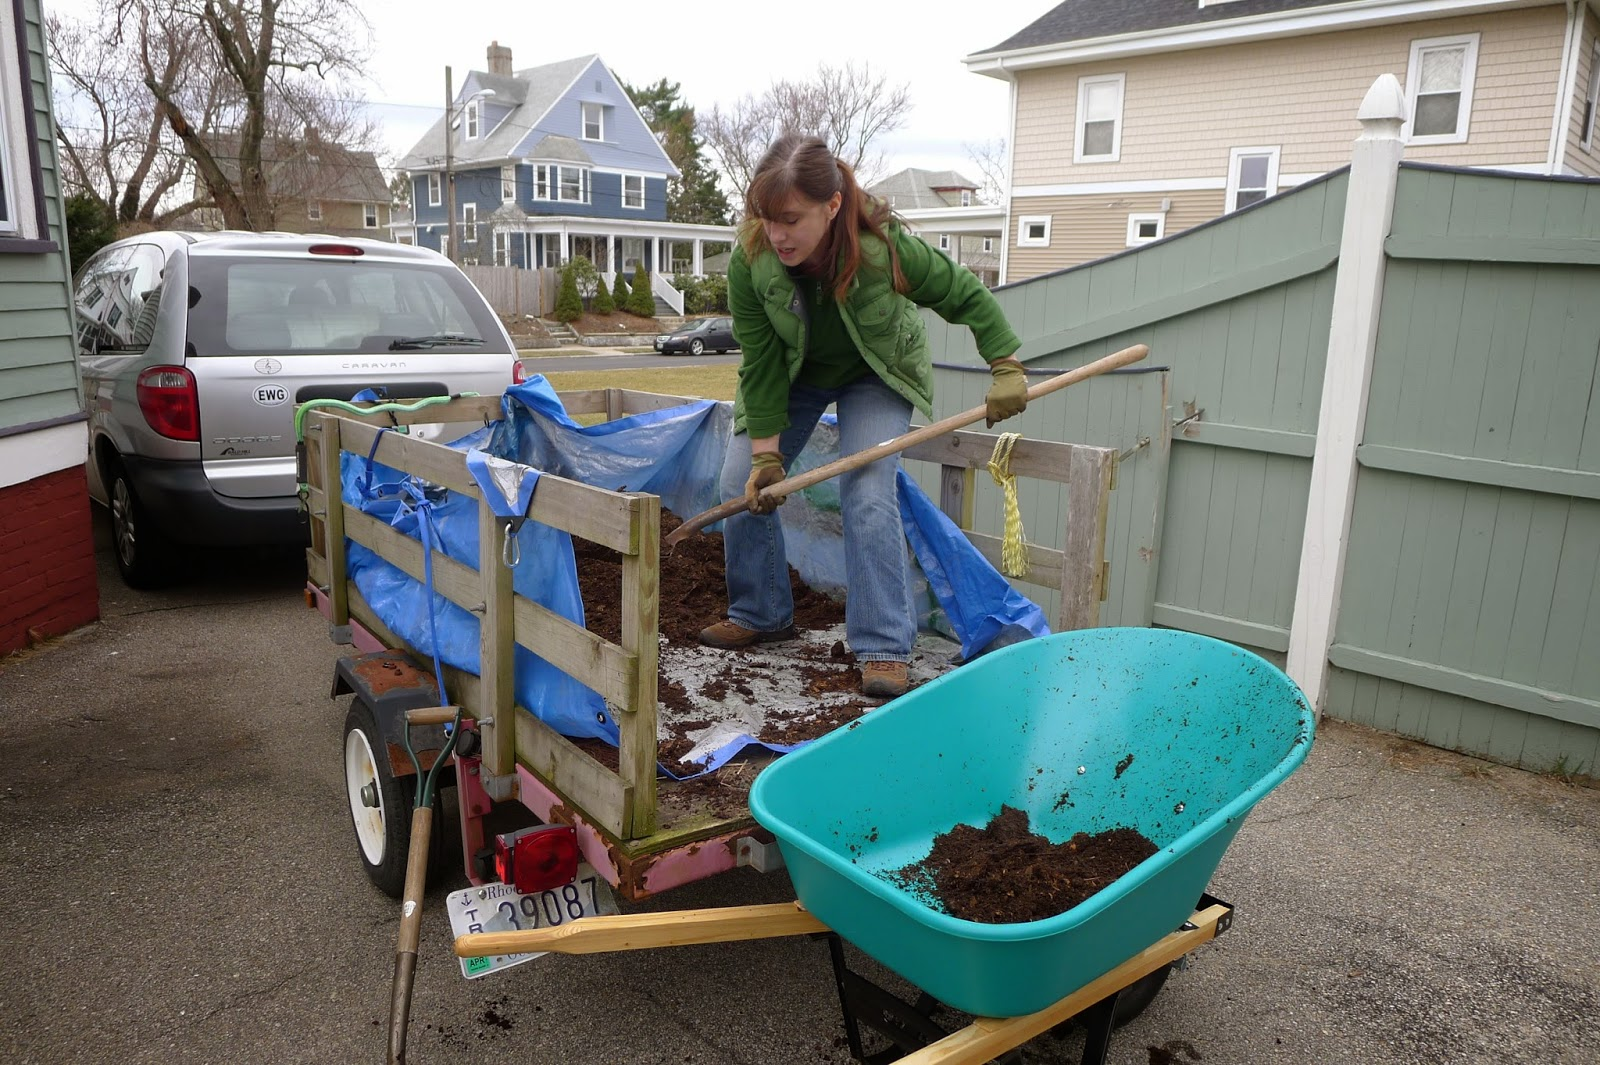 Using manure to fertilize vegetable beds, urban farming